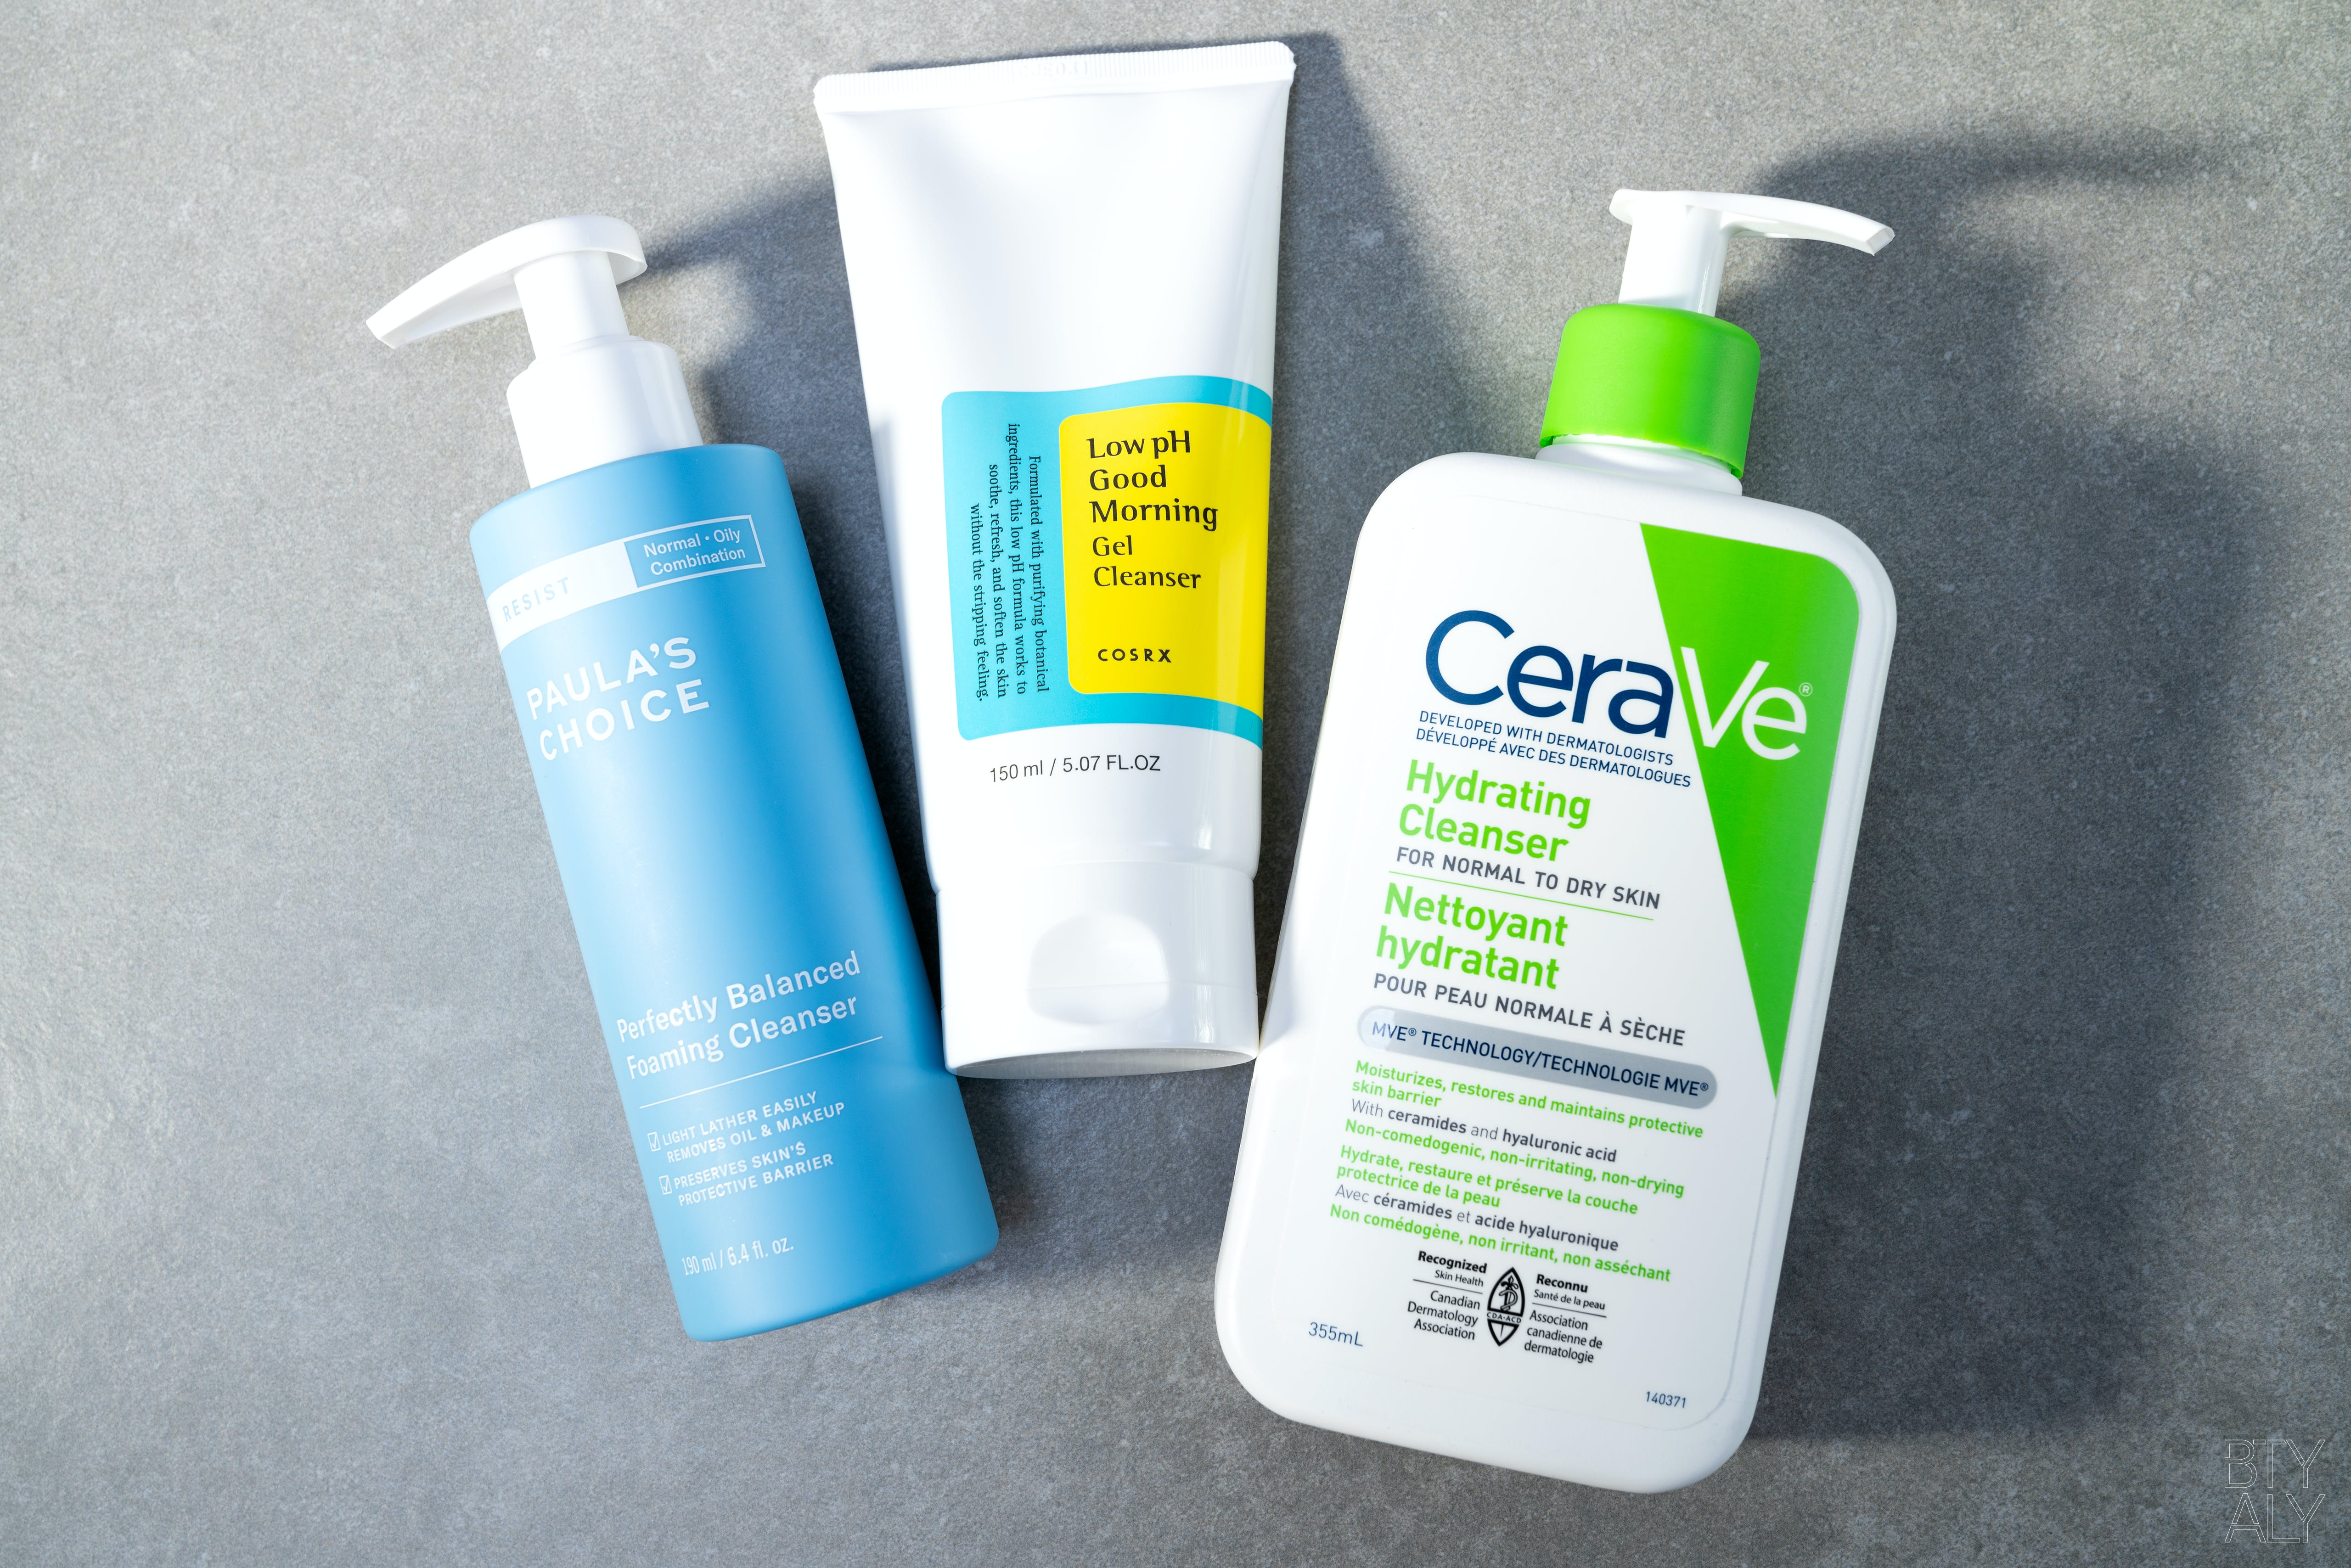 How To Cleanse Properly Your Skin PaulaPaula's Choice Optimal Results Hydrating Cleanser, CeraVe Hydrating Cleanser, Cosrx Low pH Good Morning Gel Cleansers Choice Cerave Cosrx